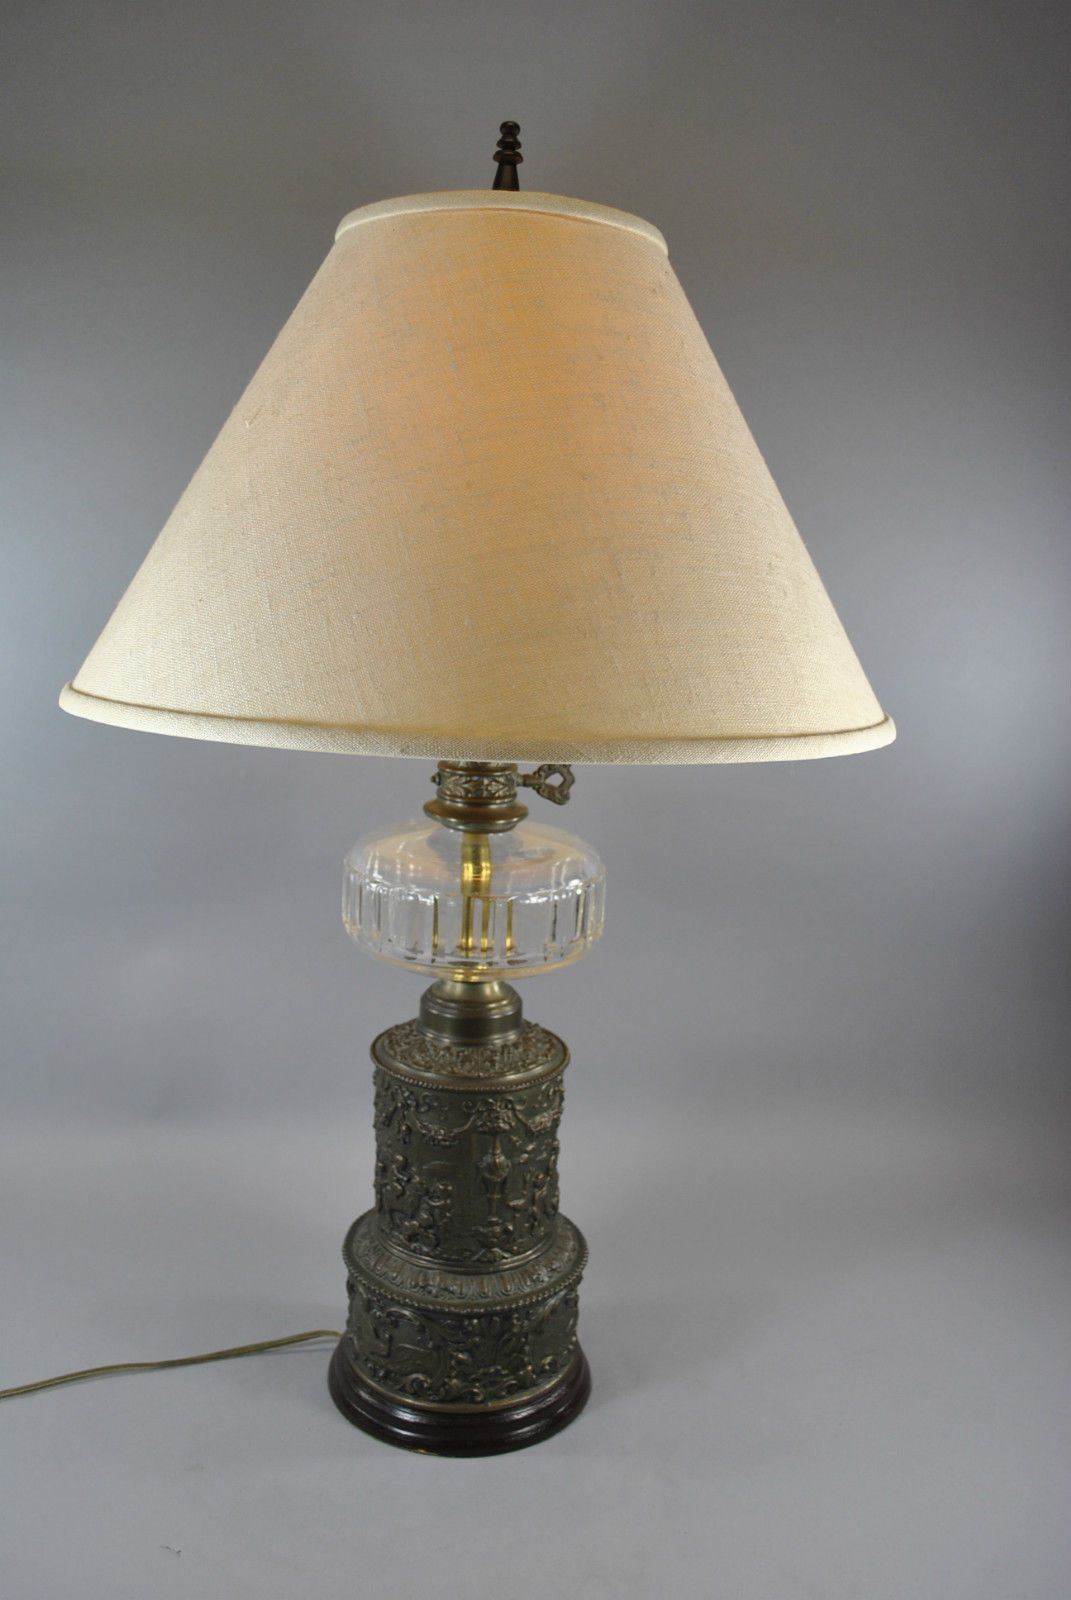 40s Lamp Google Search Table Lamp Contemporary Table